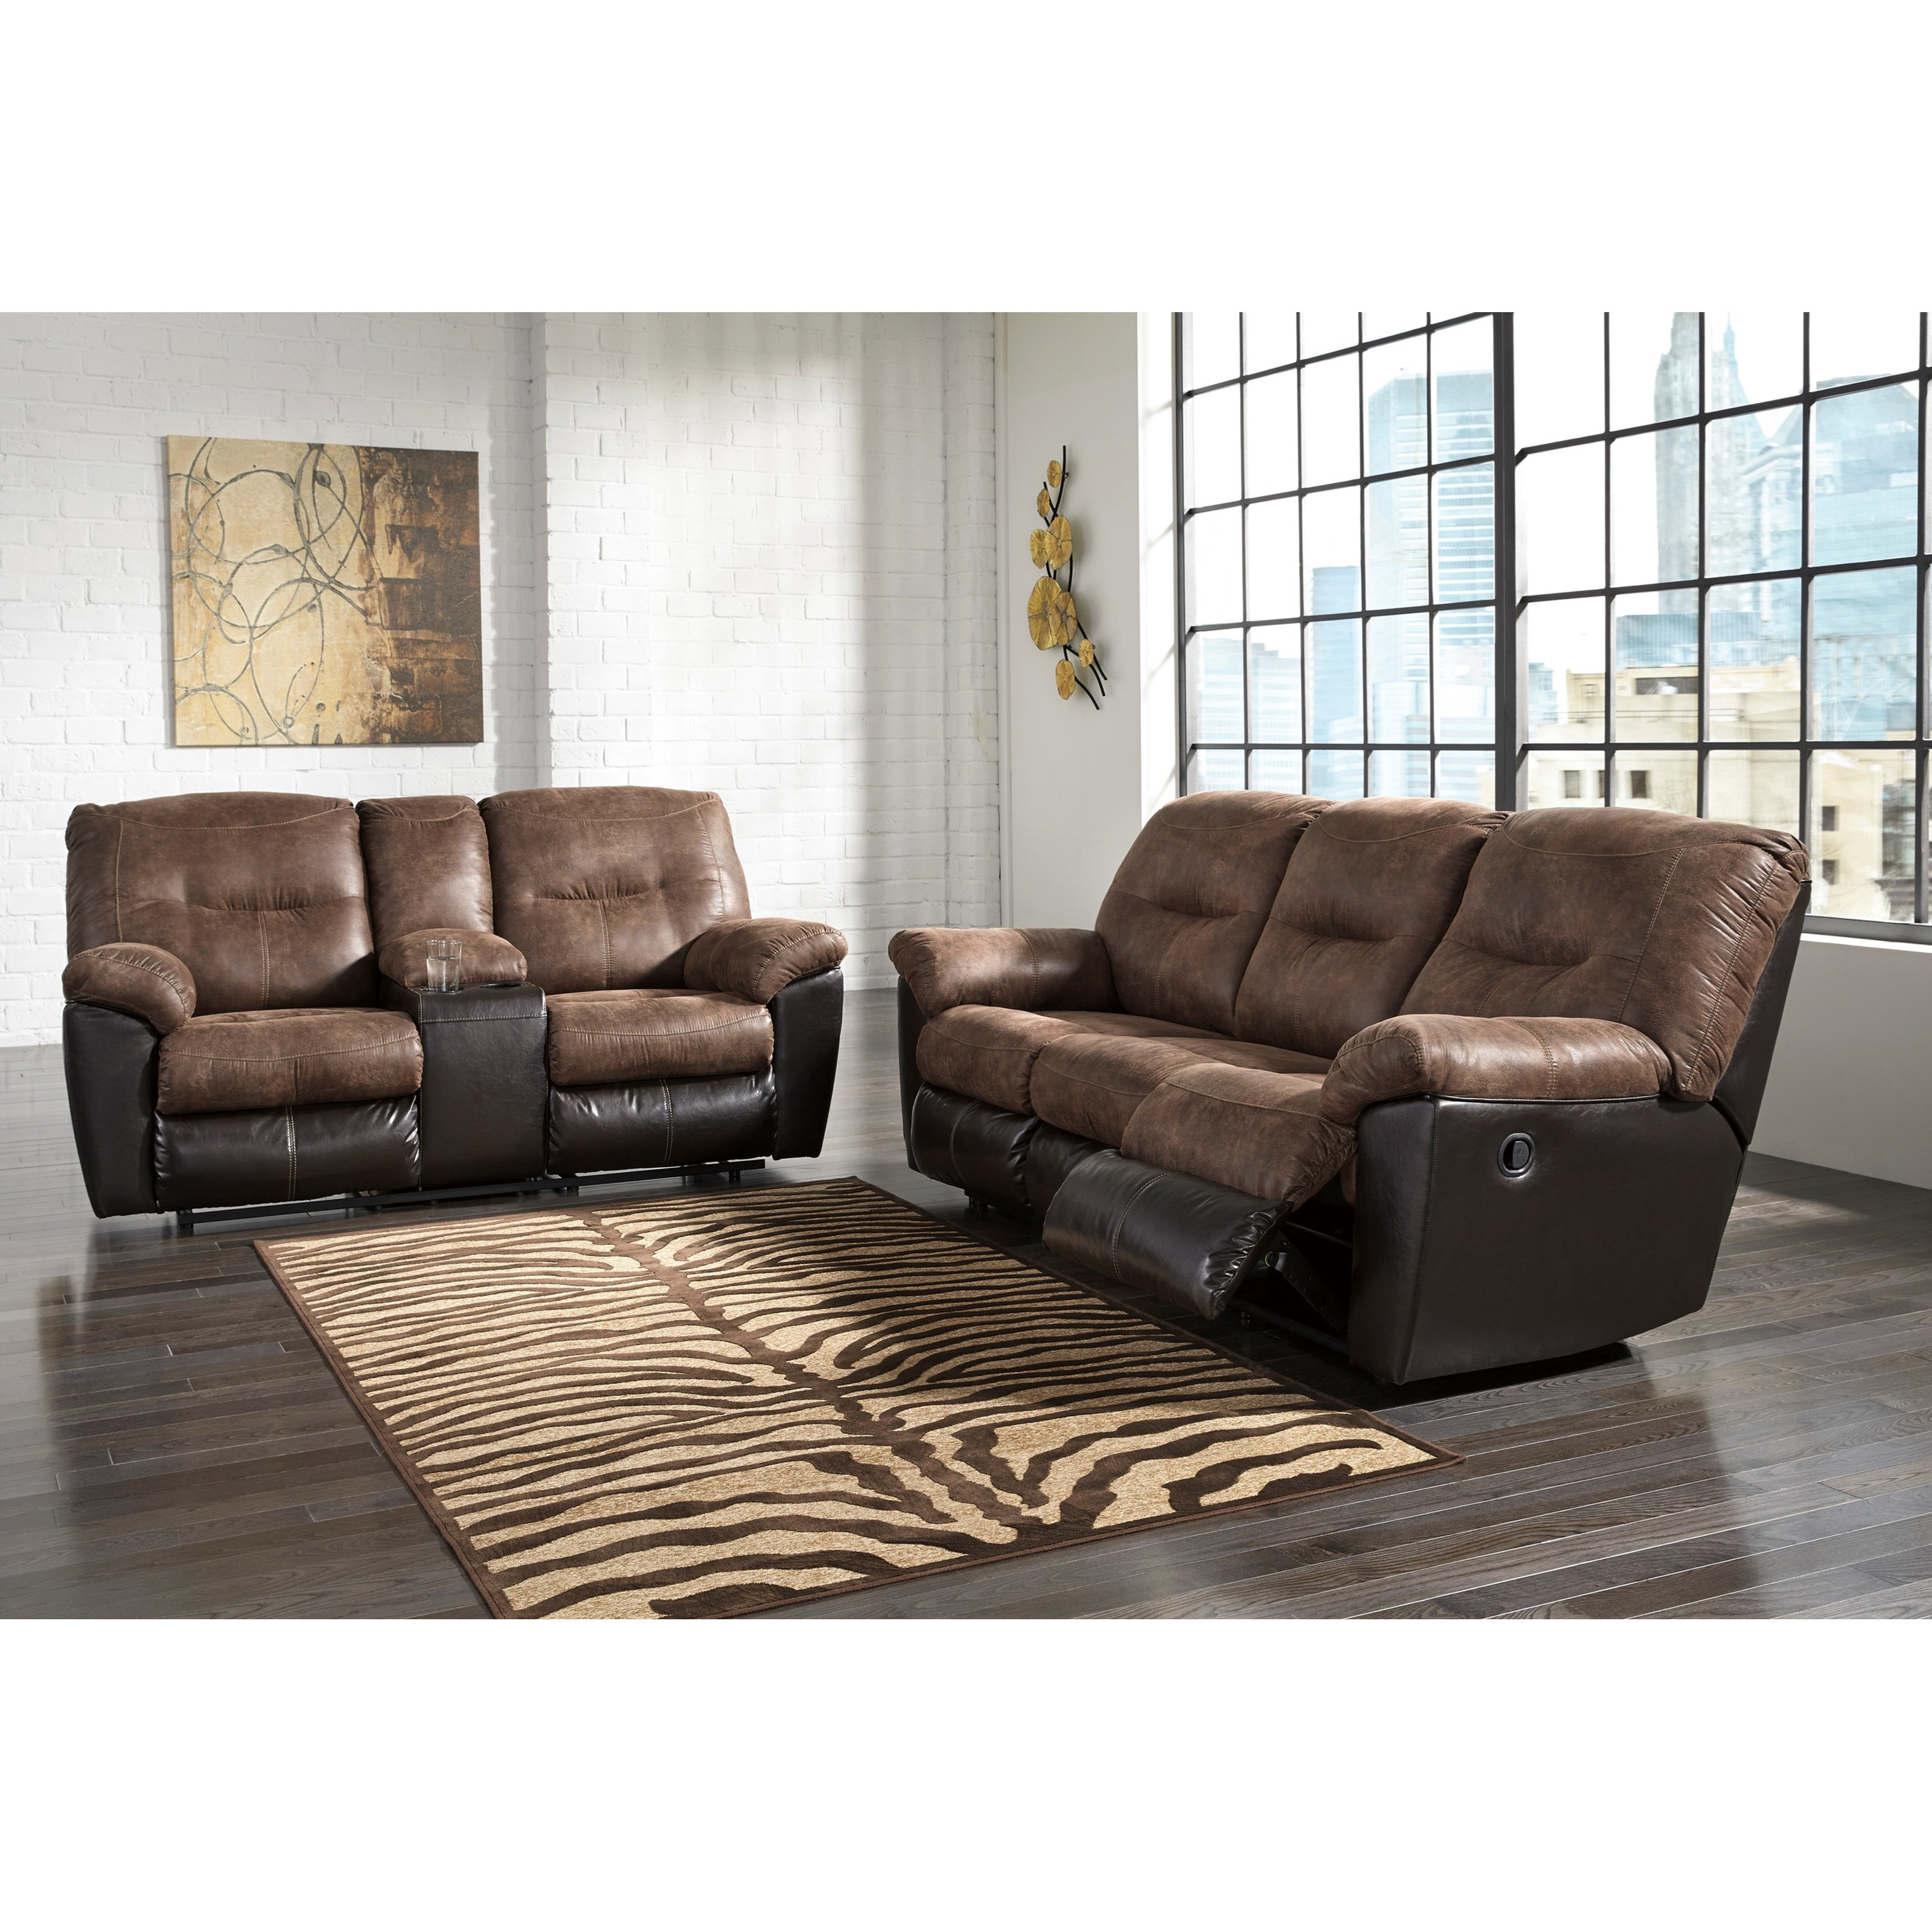 Styleline lannister reclining living room group efo furniture outlet reclining living room for Ashley wilkes bedroom collection